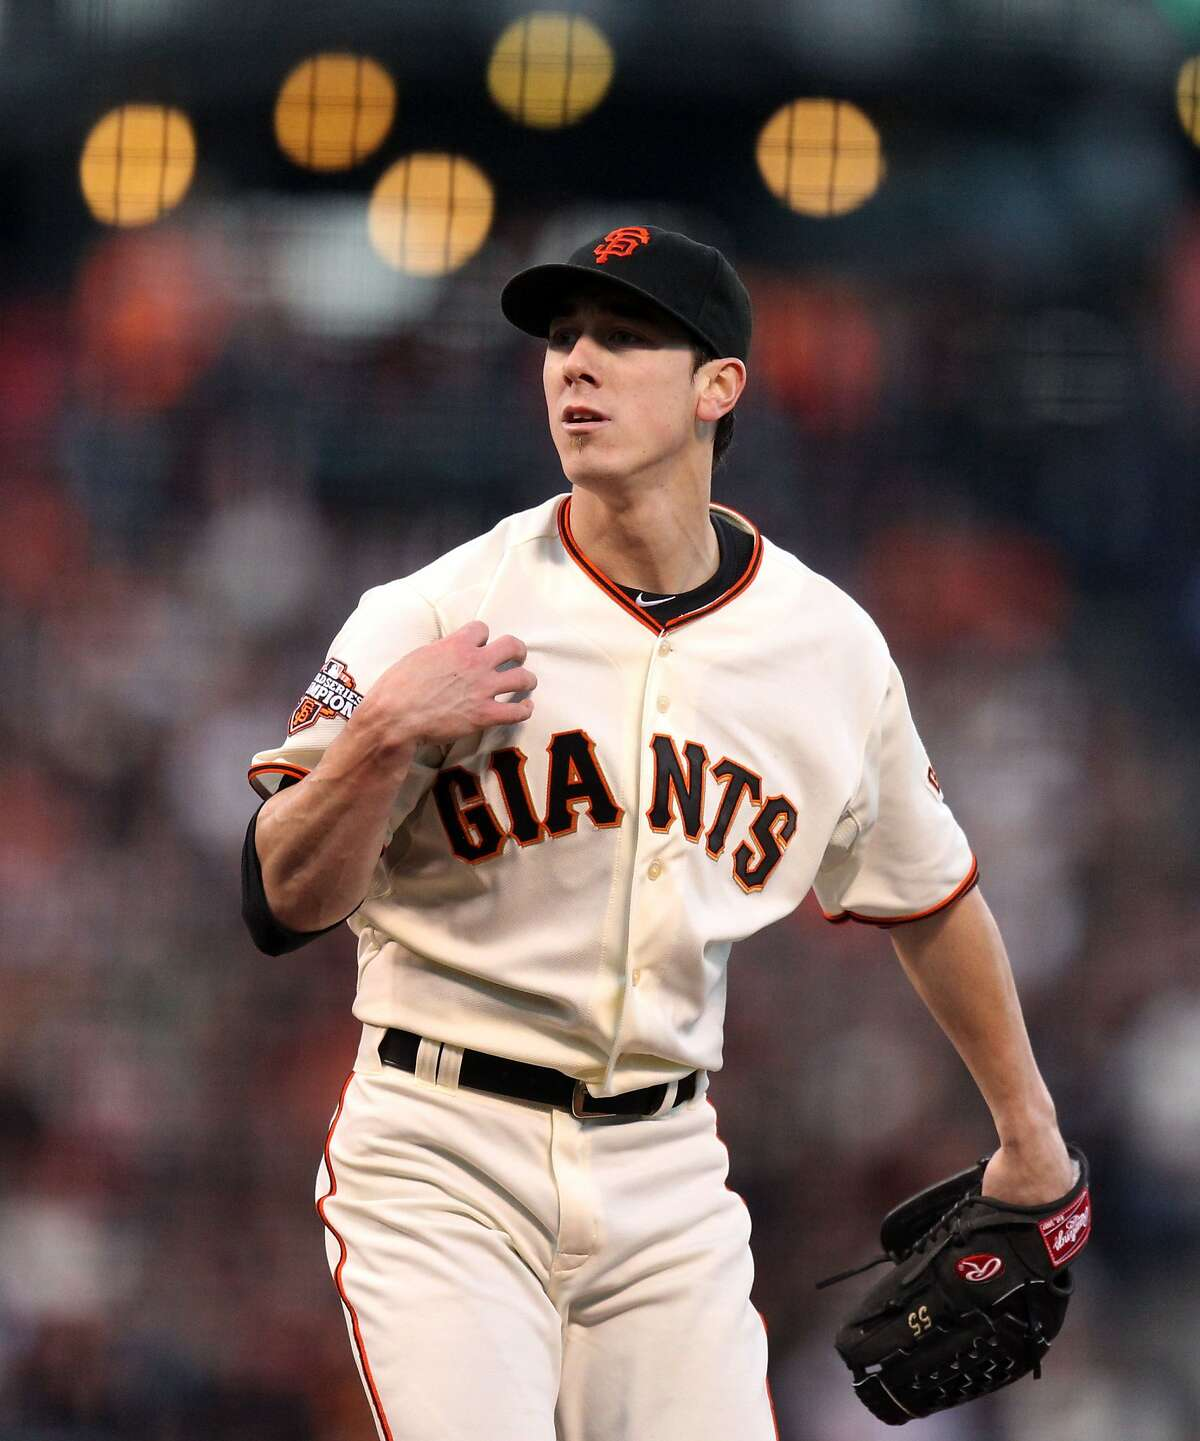 Tim Lincecum starting pitcher of the San Francisco Giants reacts after striking out Adam Lind of the Toronto Blue Jays in the 4th inning of their MLB baseball game Tuesday, June 4, 2013 in San Francisco Calif.